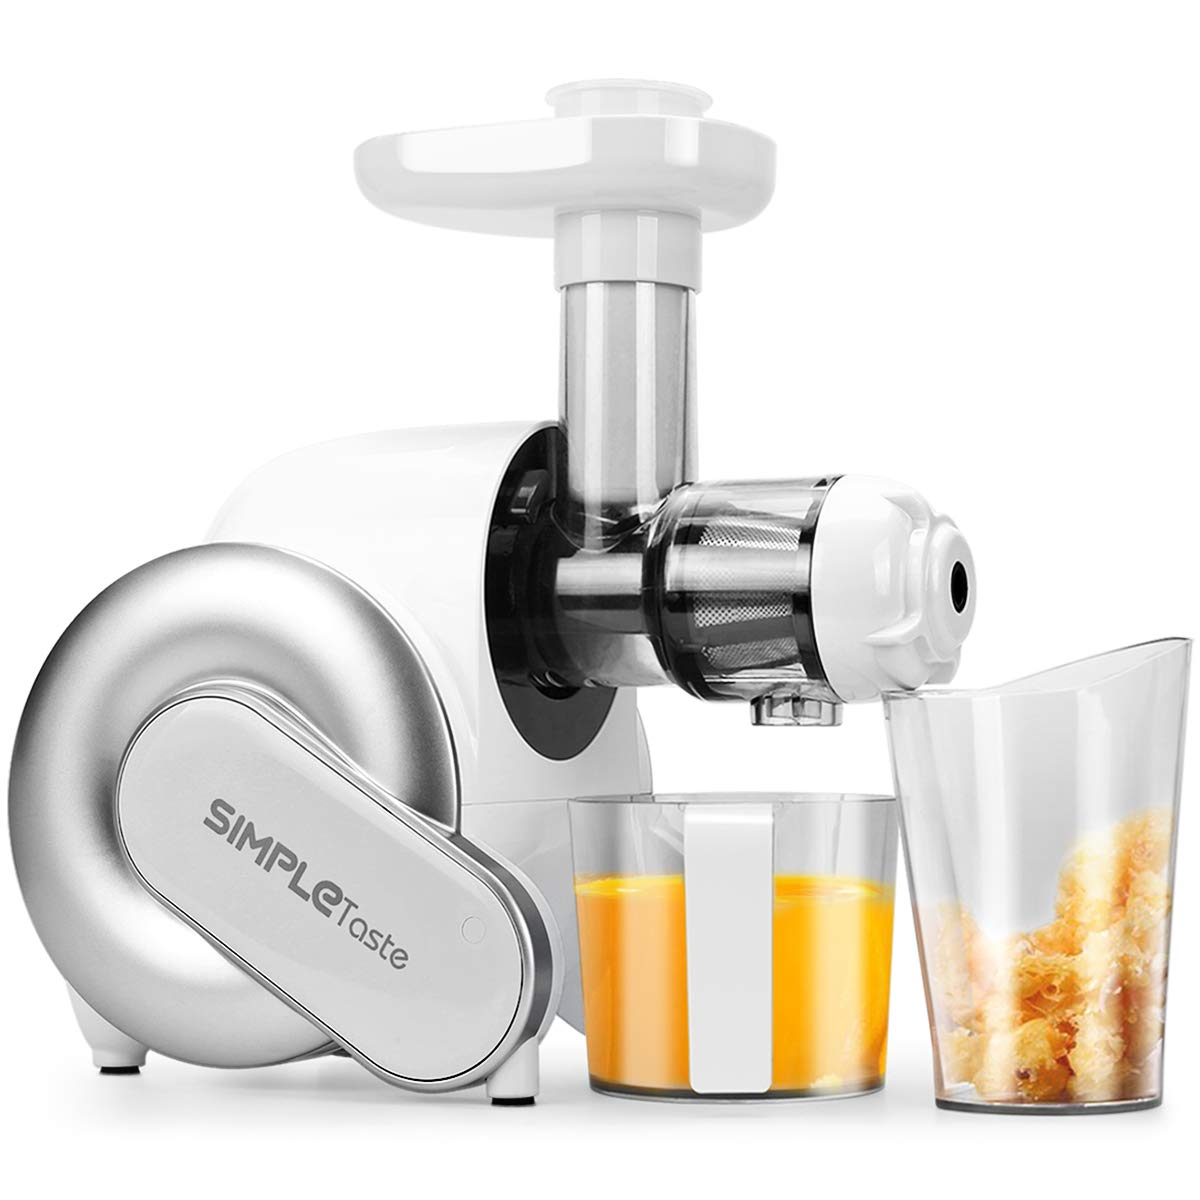 SimpleTaste Electric Masticating Juicer Extractor, Slow Juicer for High Nutrient Fruit and Vegetable Juice, White 708NA-0002